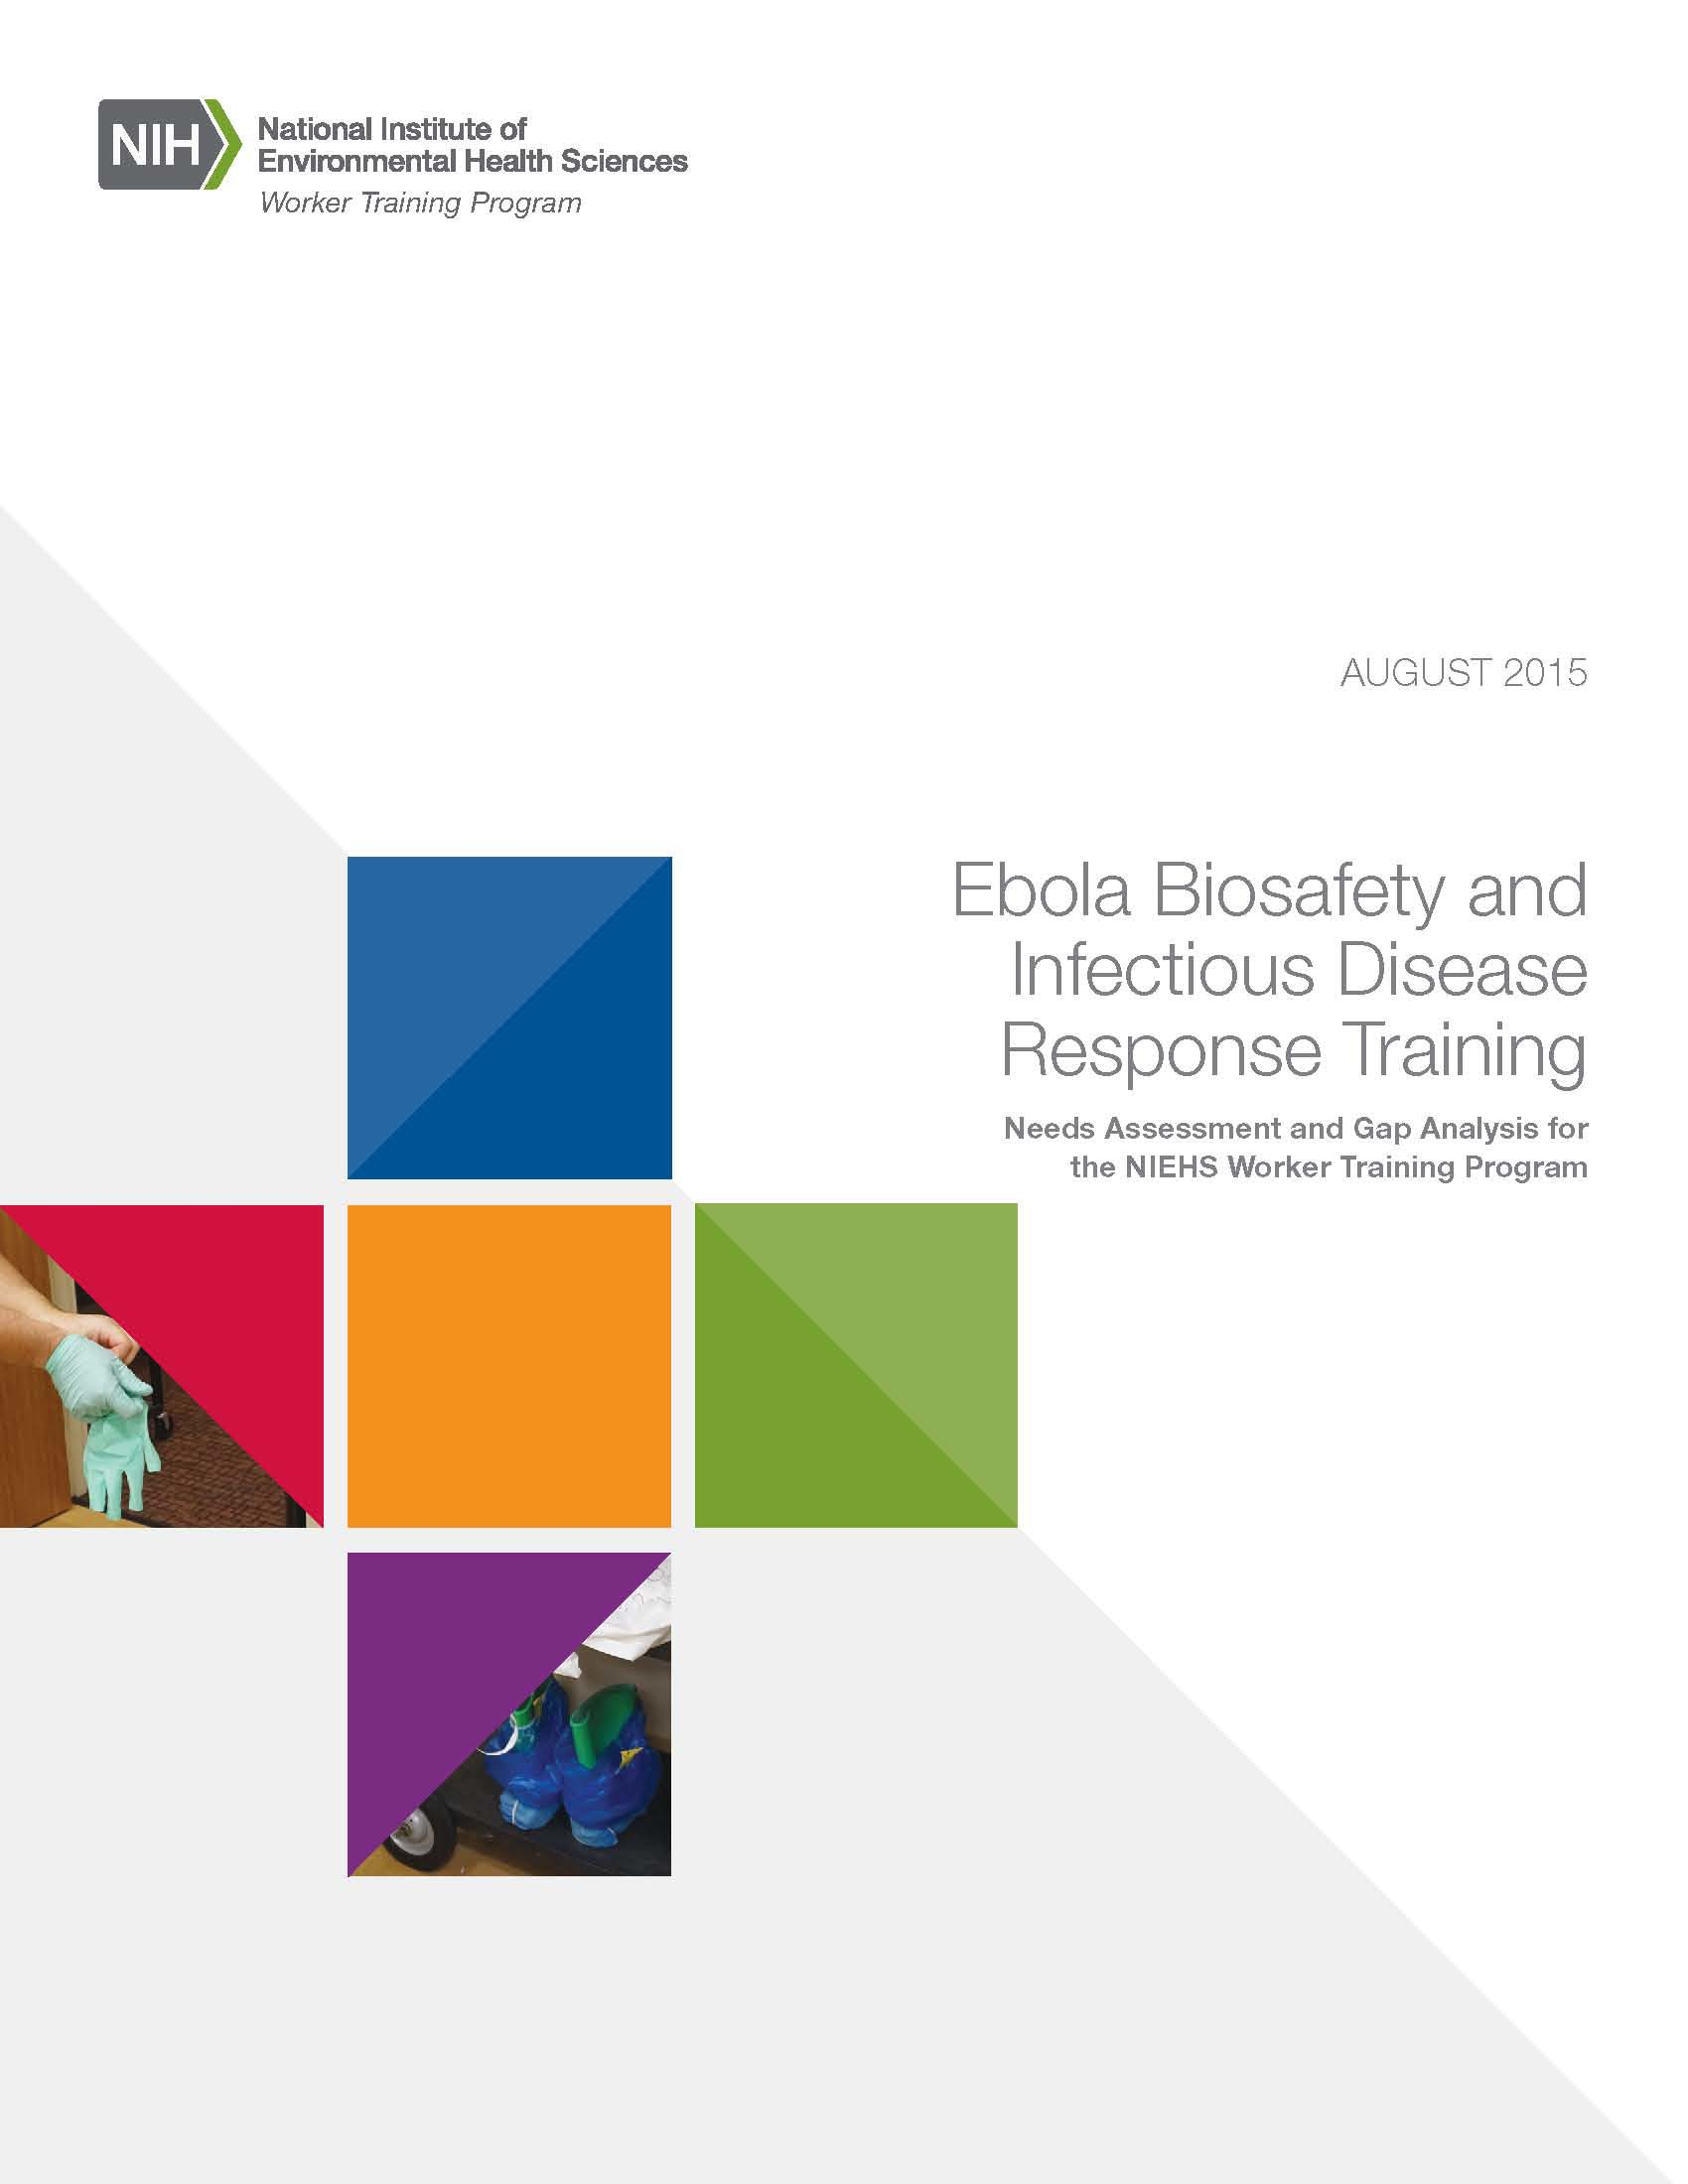 Ebola Training Gap Analysis